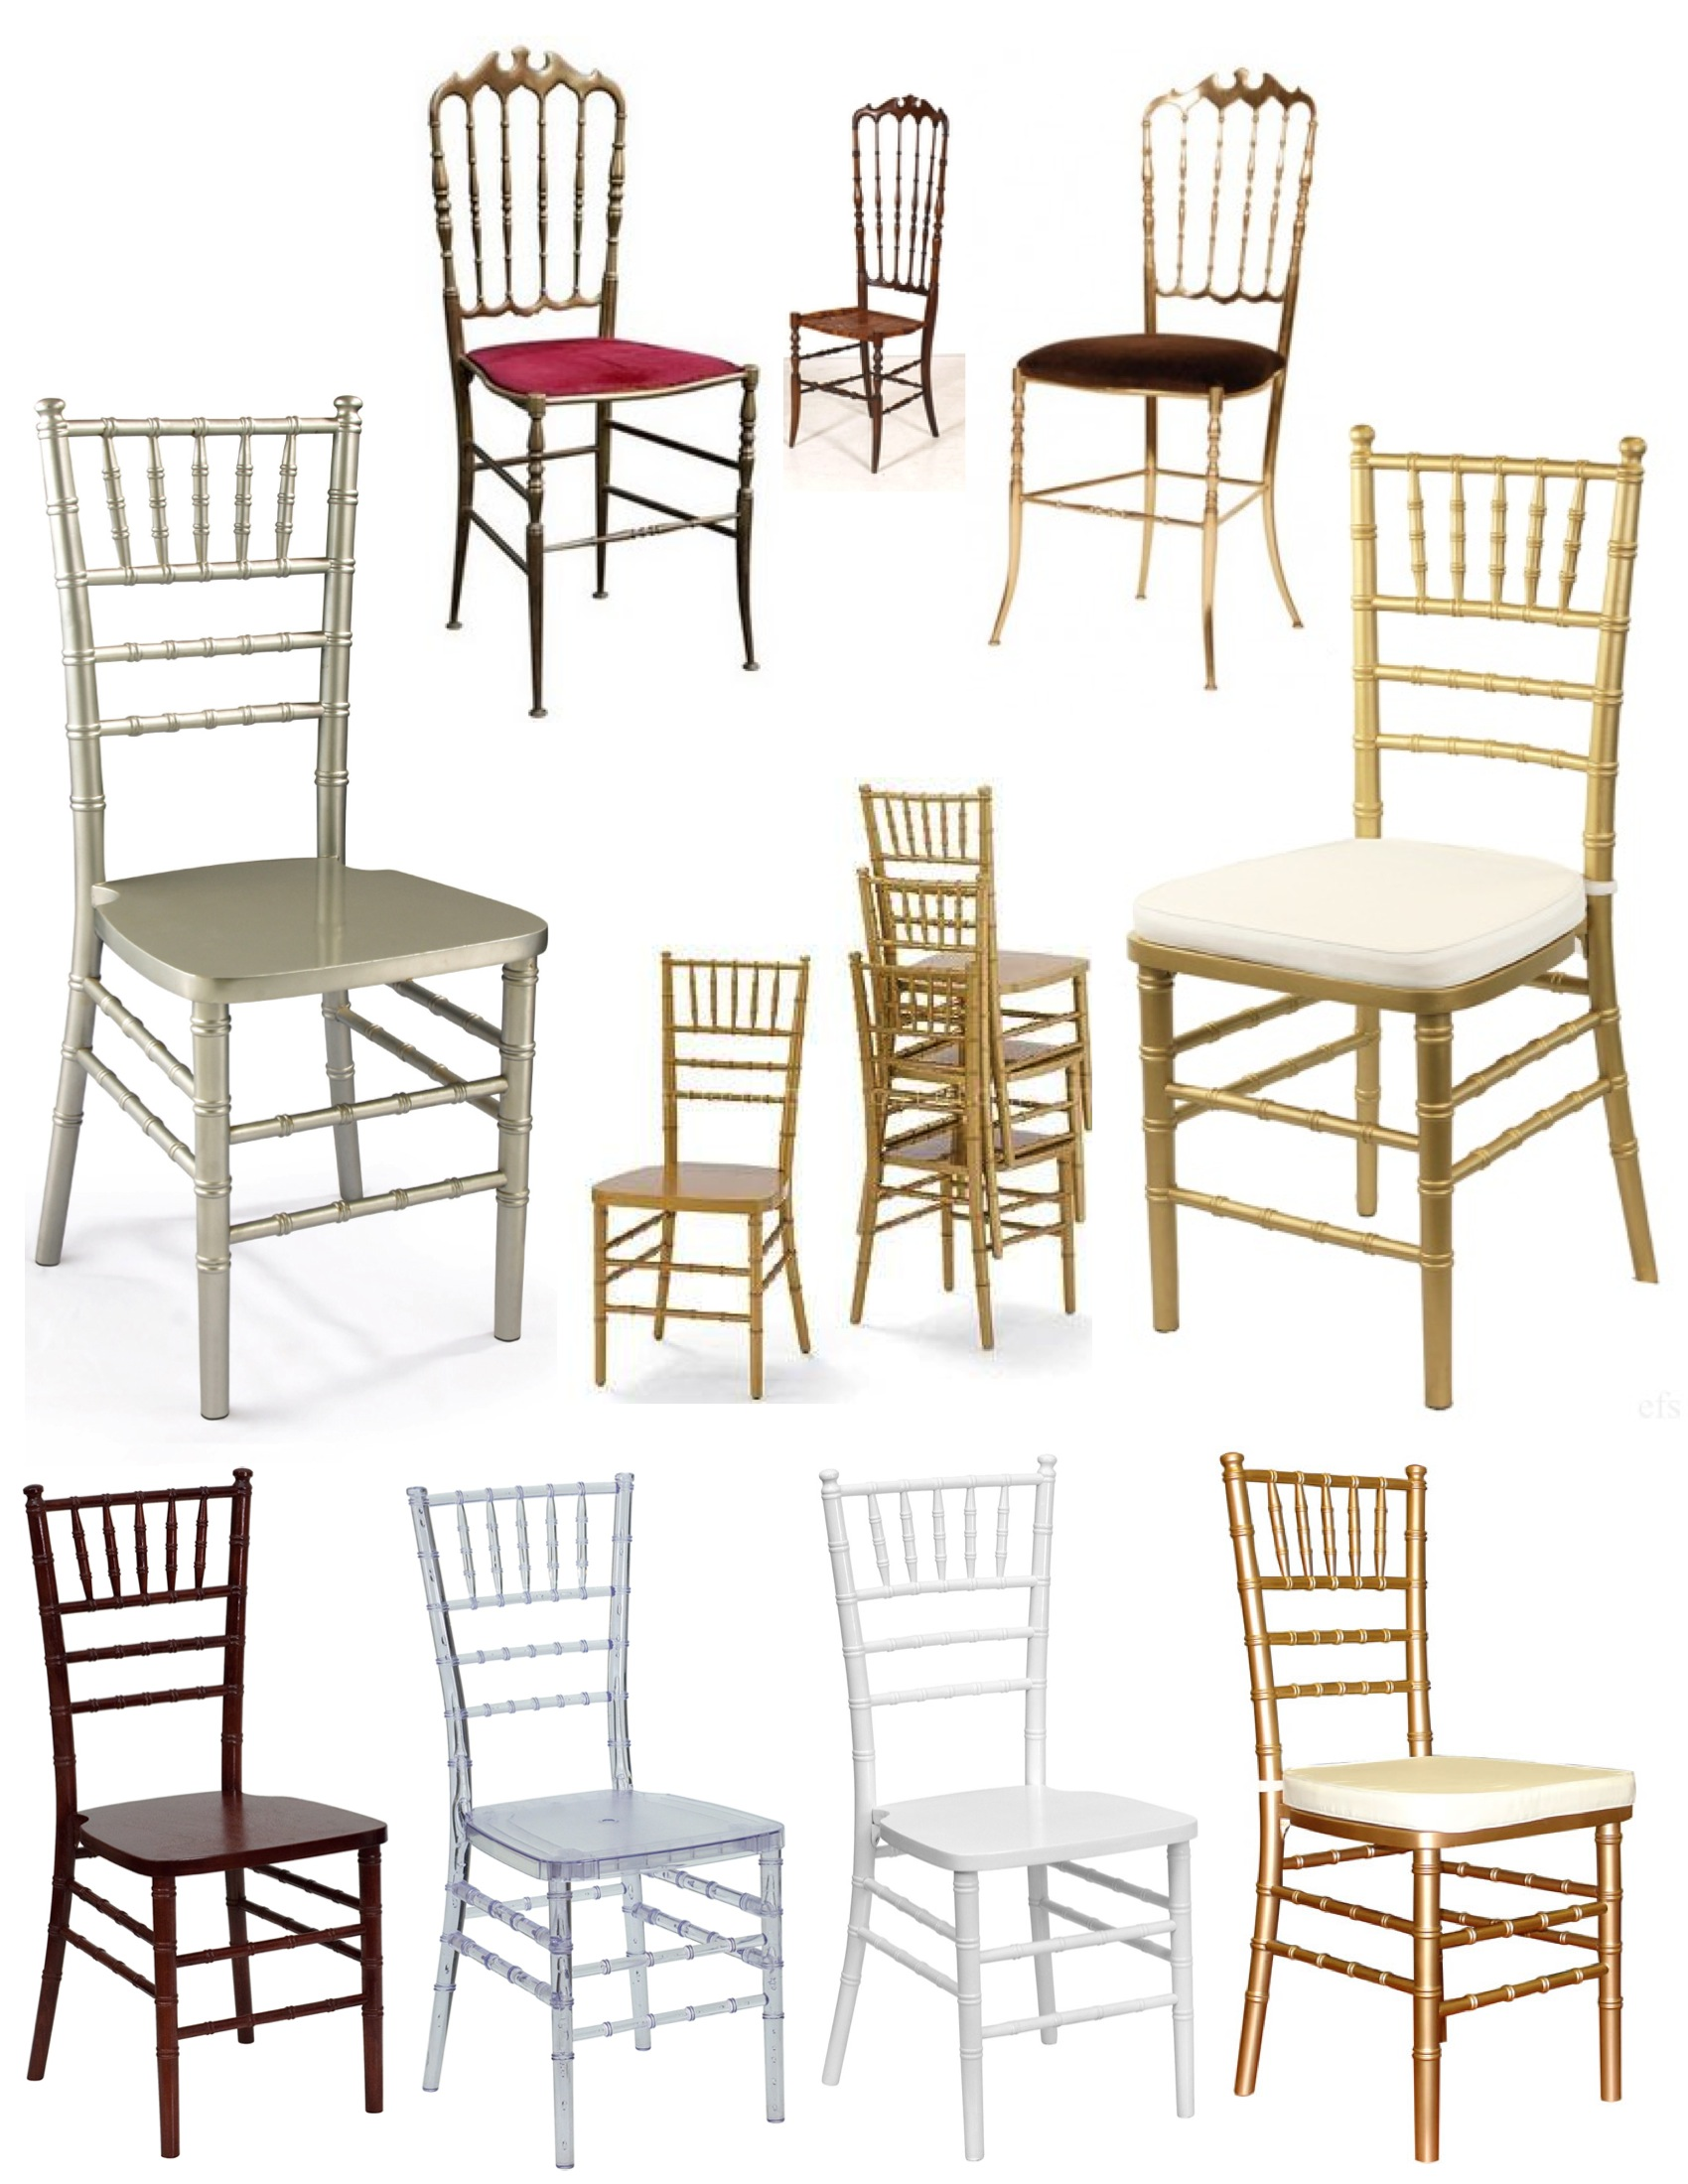 Chiavari chairs rental chicago chairs for - The Chiavari Chair Past And Present